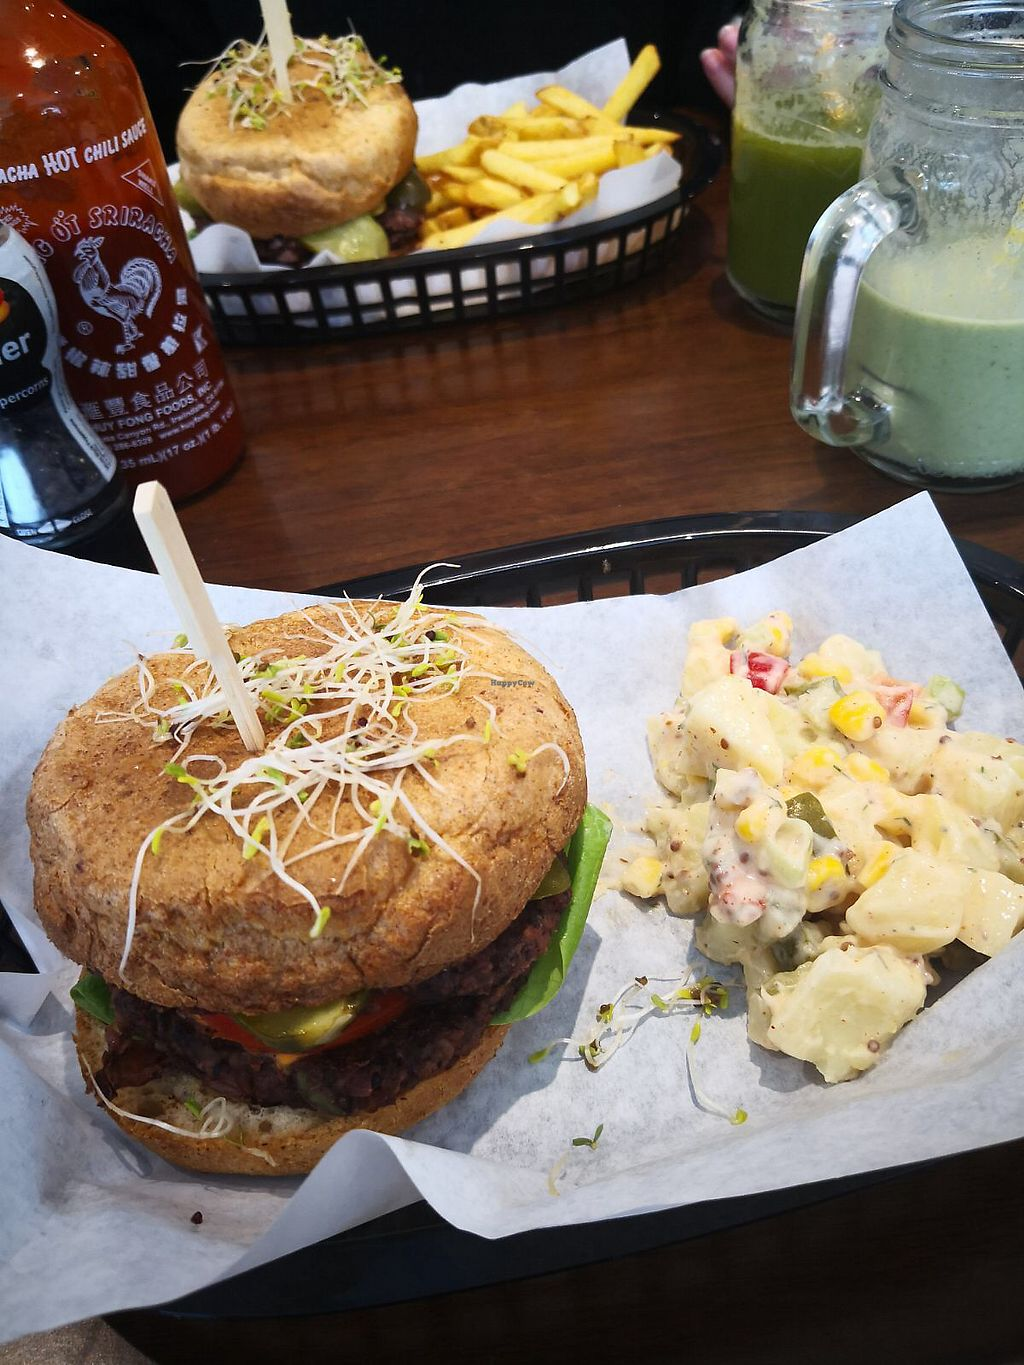 """Photo of Vutie Beets  by <a href=""""/members/profile/CharlotteBayliss"""">CharlotteBayliss</a> <br/>Bean and beet burger with potato salad and chips. Green kick juice with peanut butter smoothie ?? <br/> April 11, 2018  - <a href='/contact/abuse/image/116363/384000'>Report</a>"""